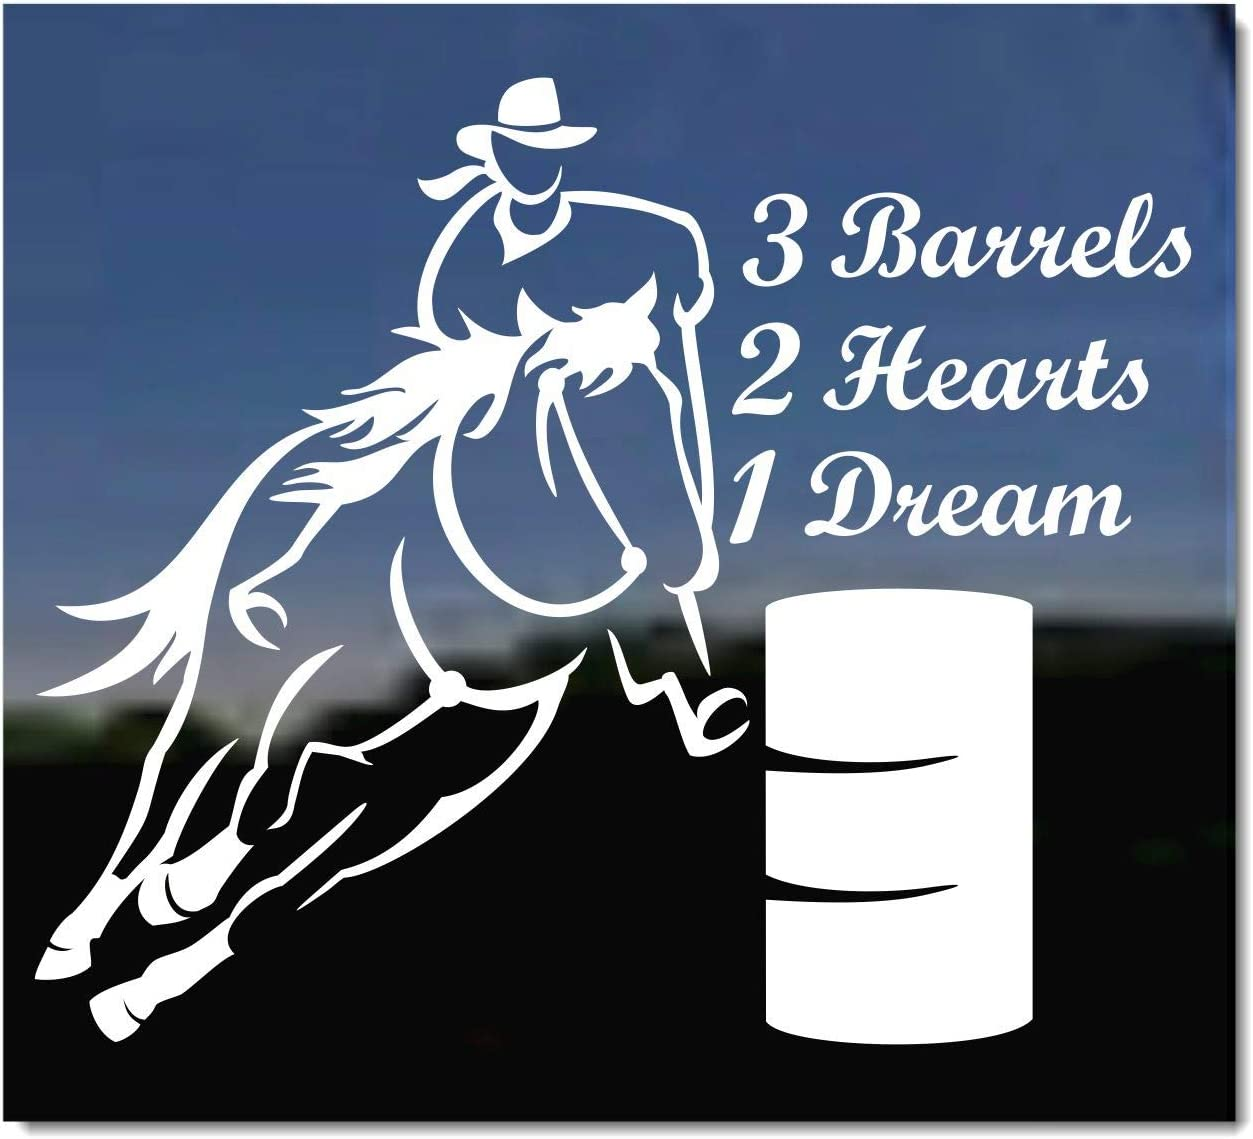 ghjkuyt412 Barrel Racing Horse 3 Barrels 2 Hearts 1 Dream 3x5 Foot Flags Outdoor Flag 100/% Single-Layer Translucent Polyester 3x5 Ft